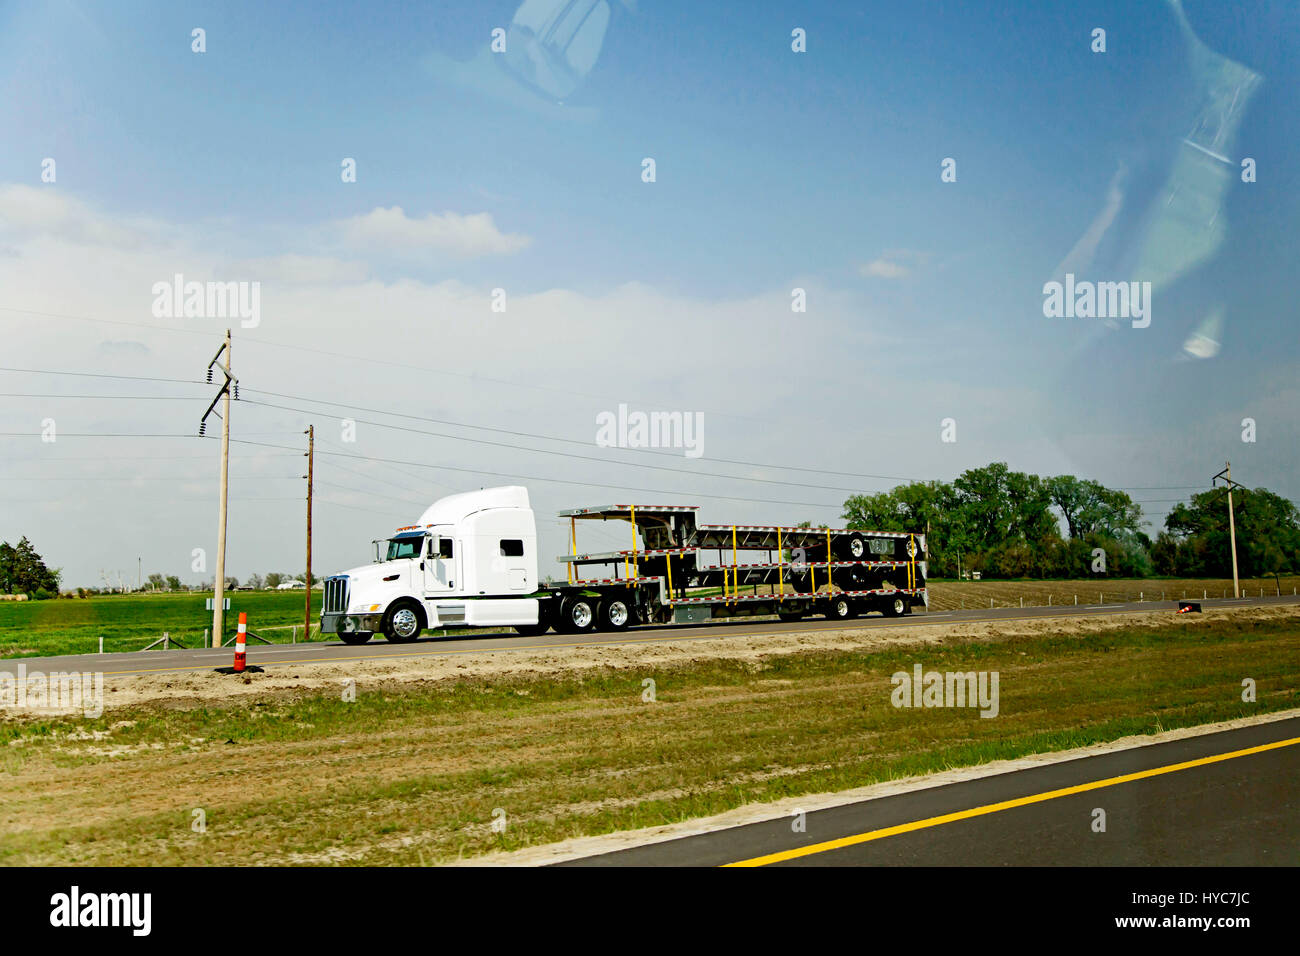 truck on road, united states of america - Stock Image